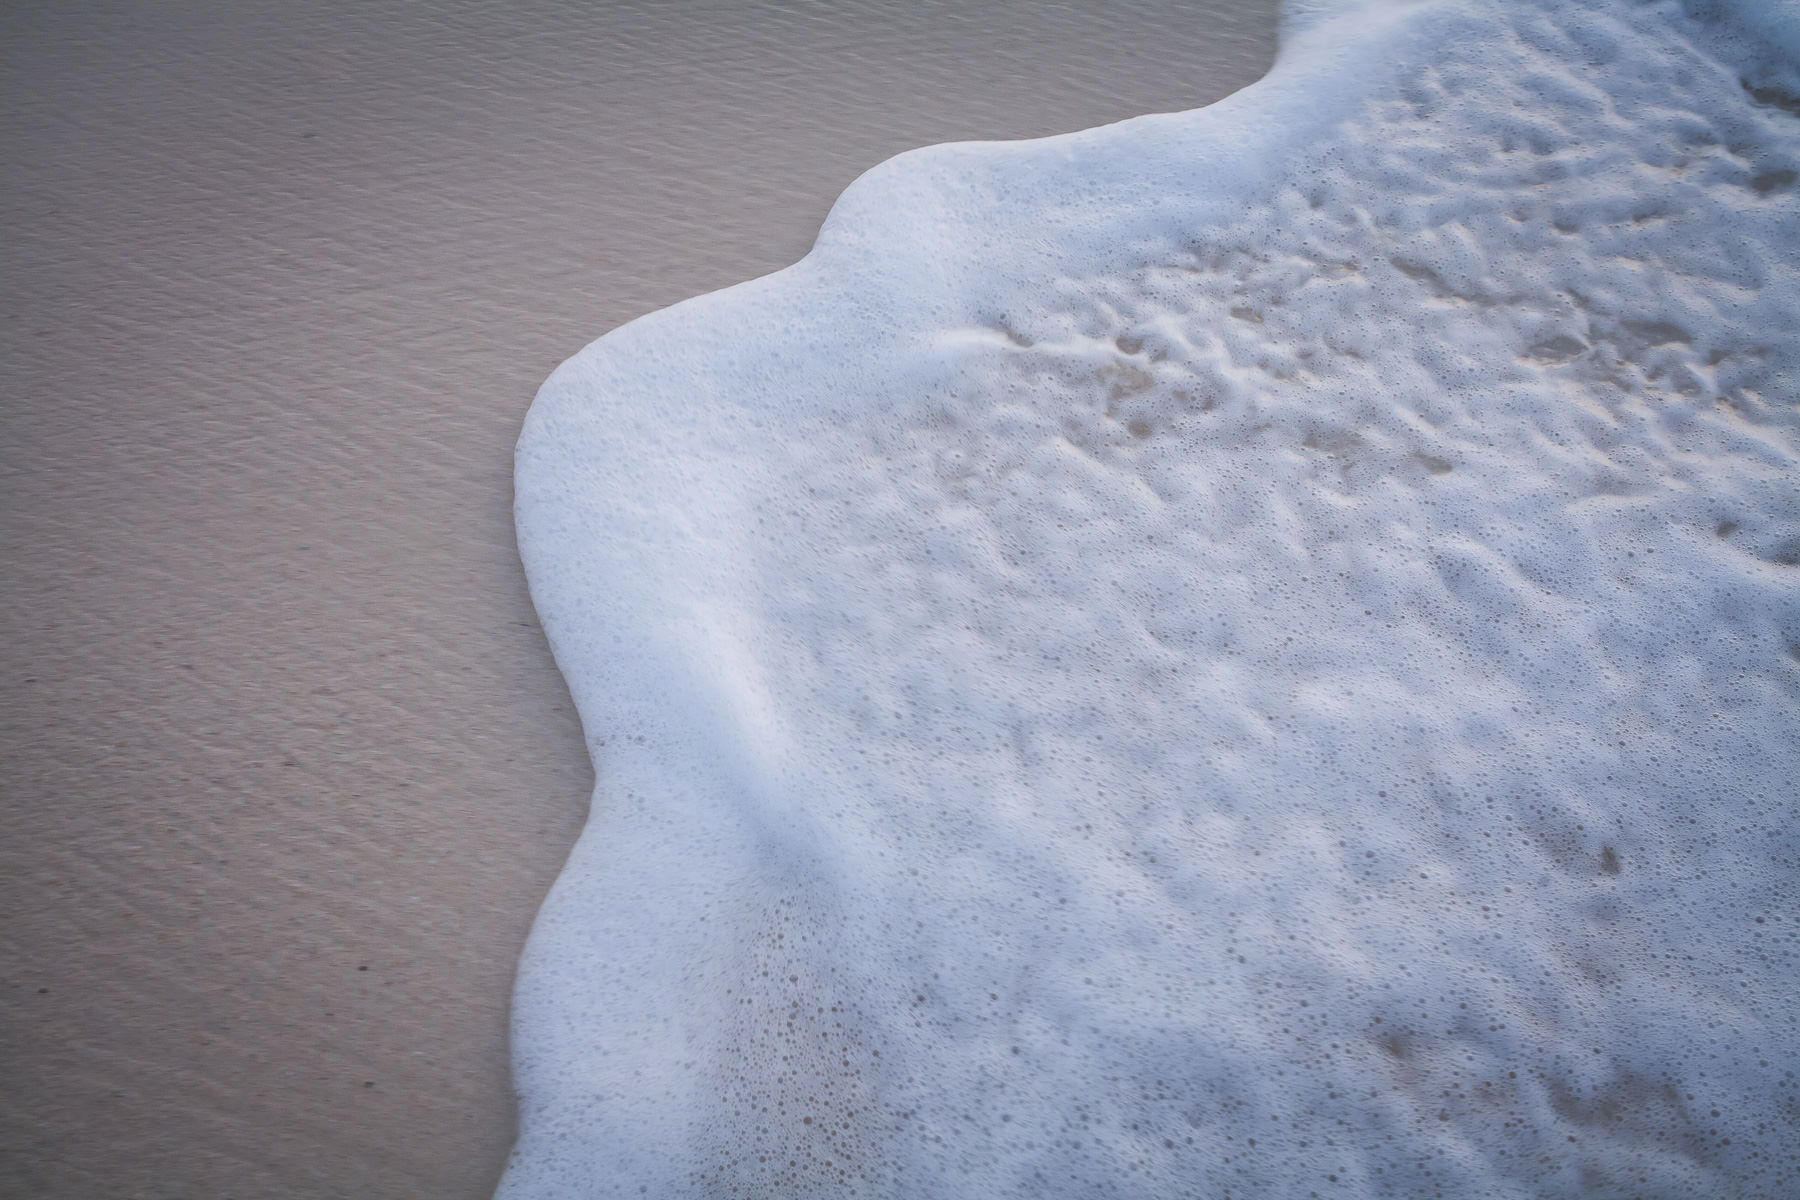 White ocean foam on beach.